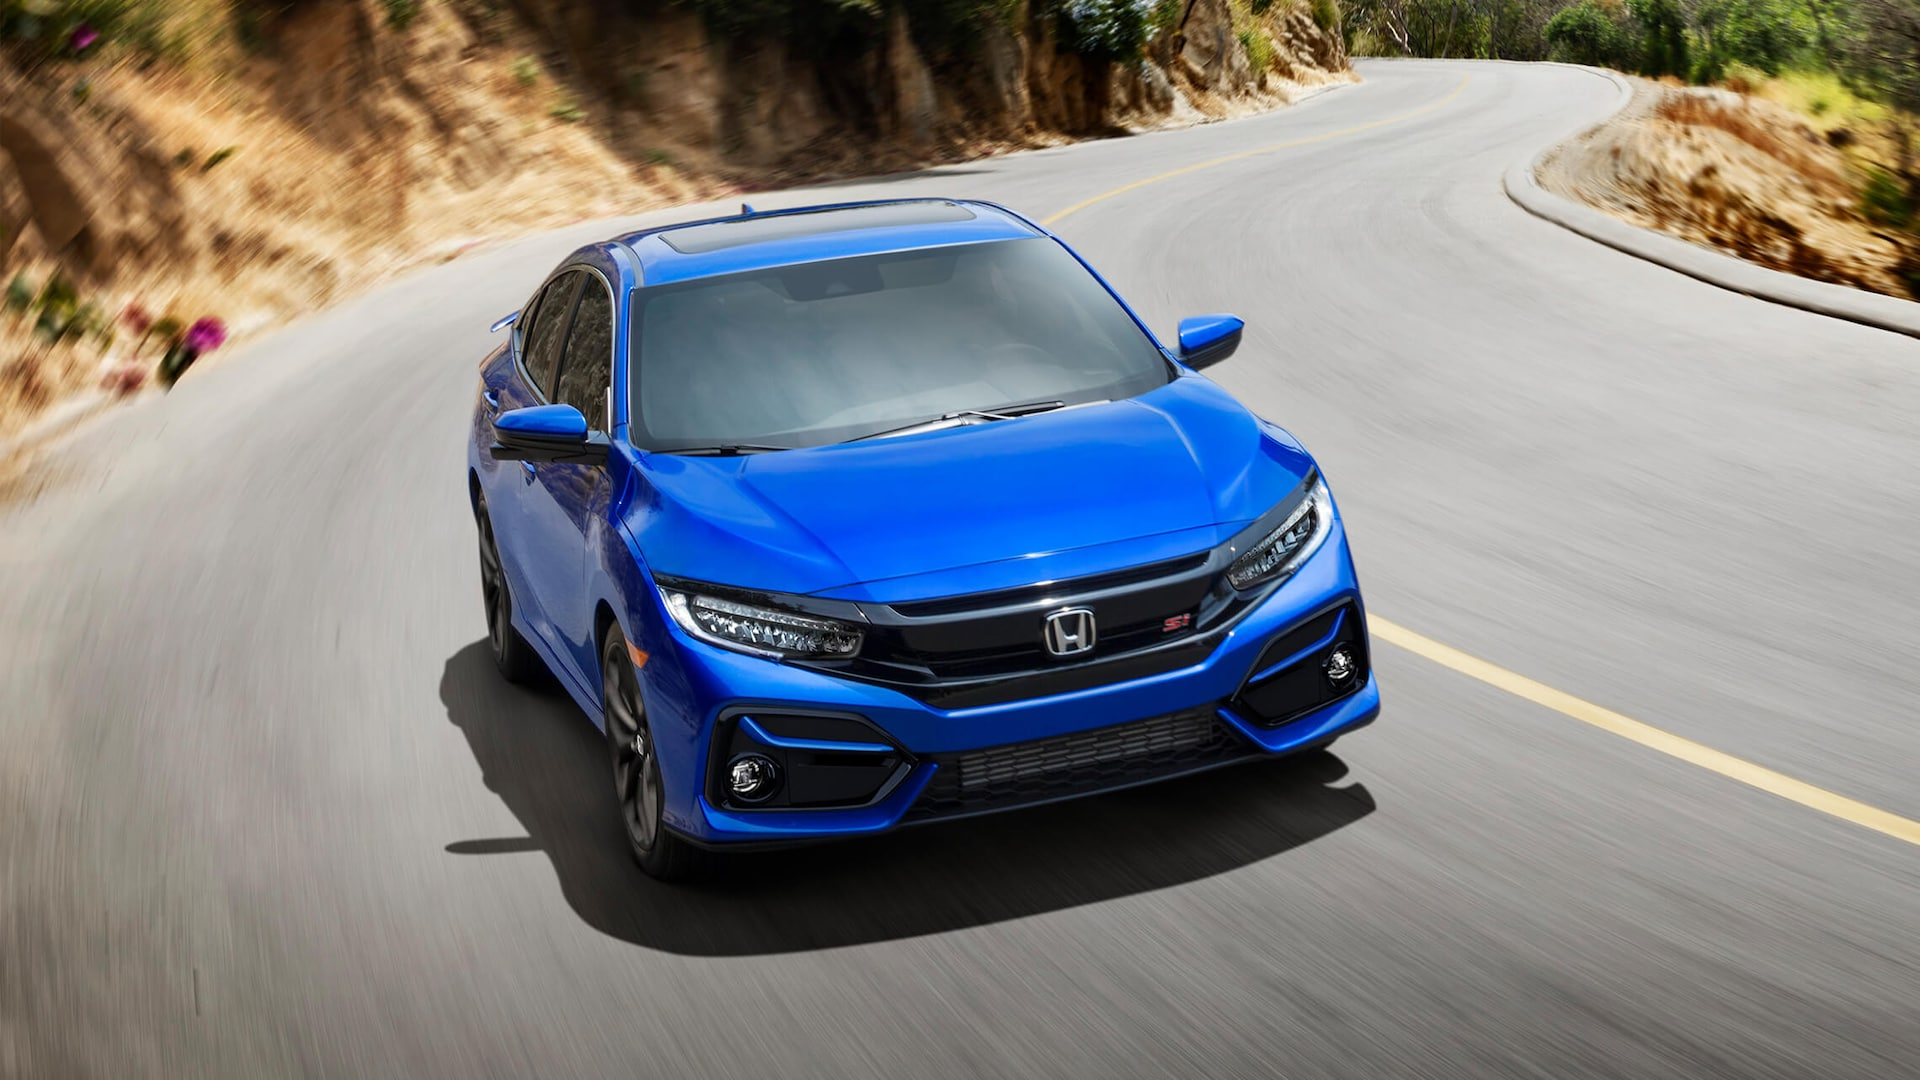 Front passenger's side view of the 2020 Honda Civic Si Sedan in Aegean Blue Metallic driving on side of mountain.